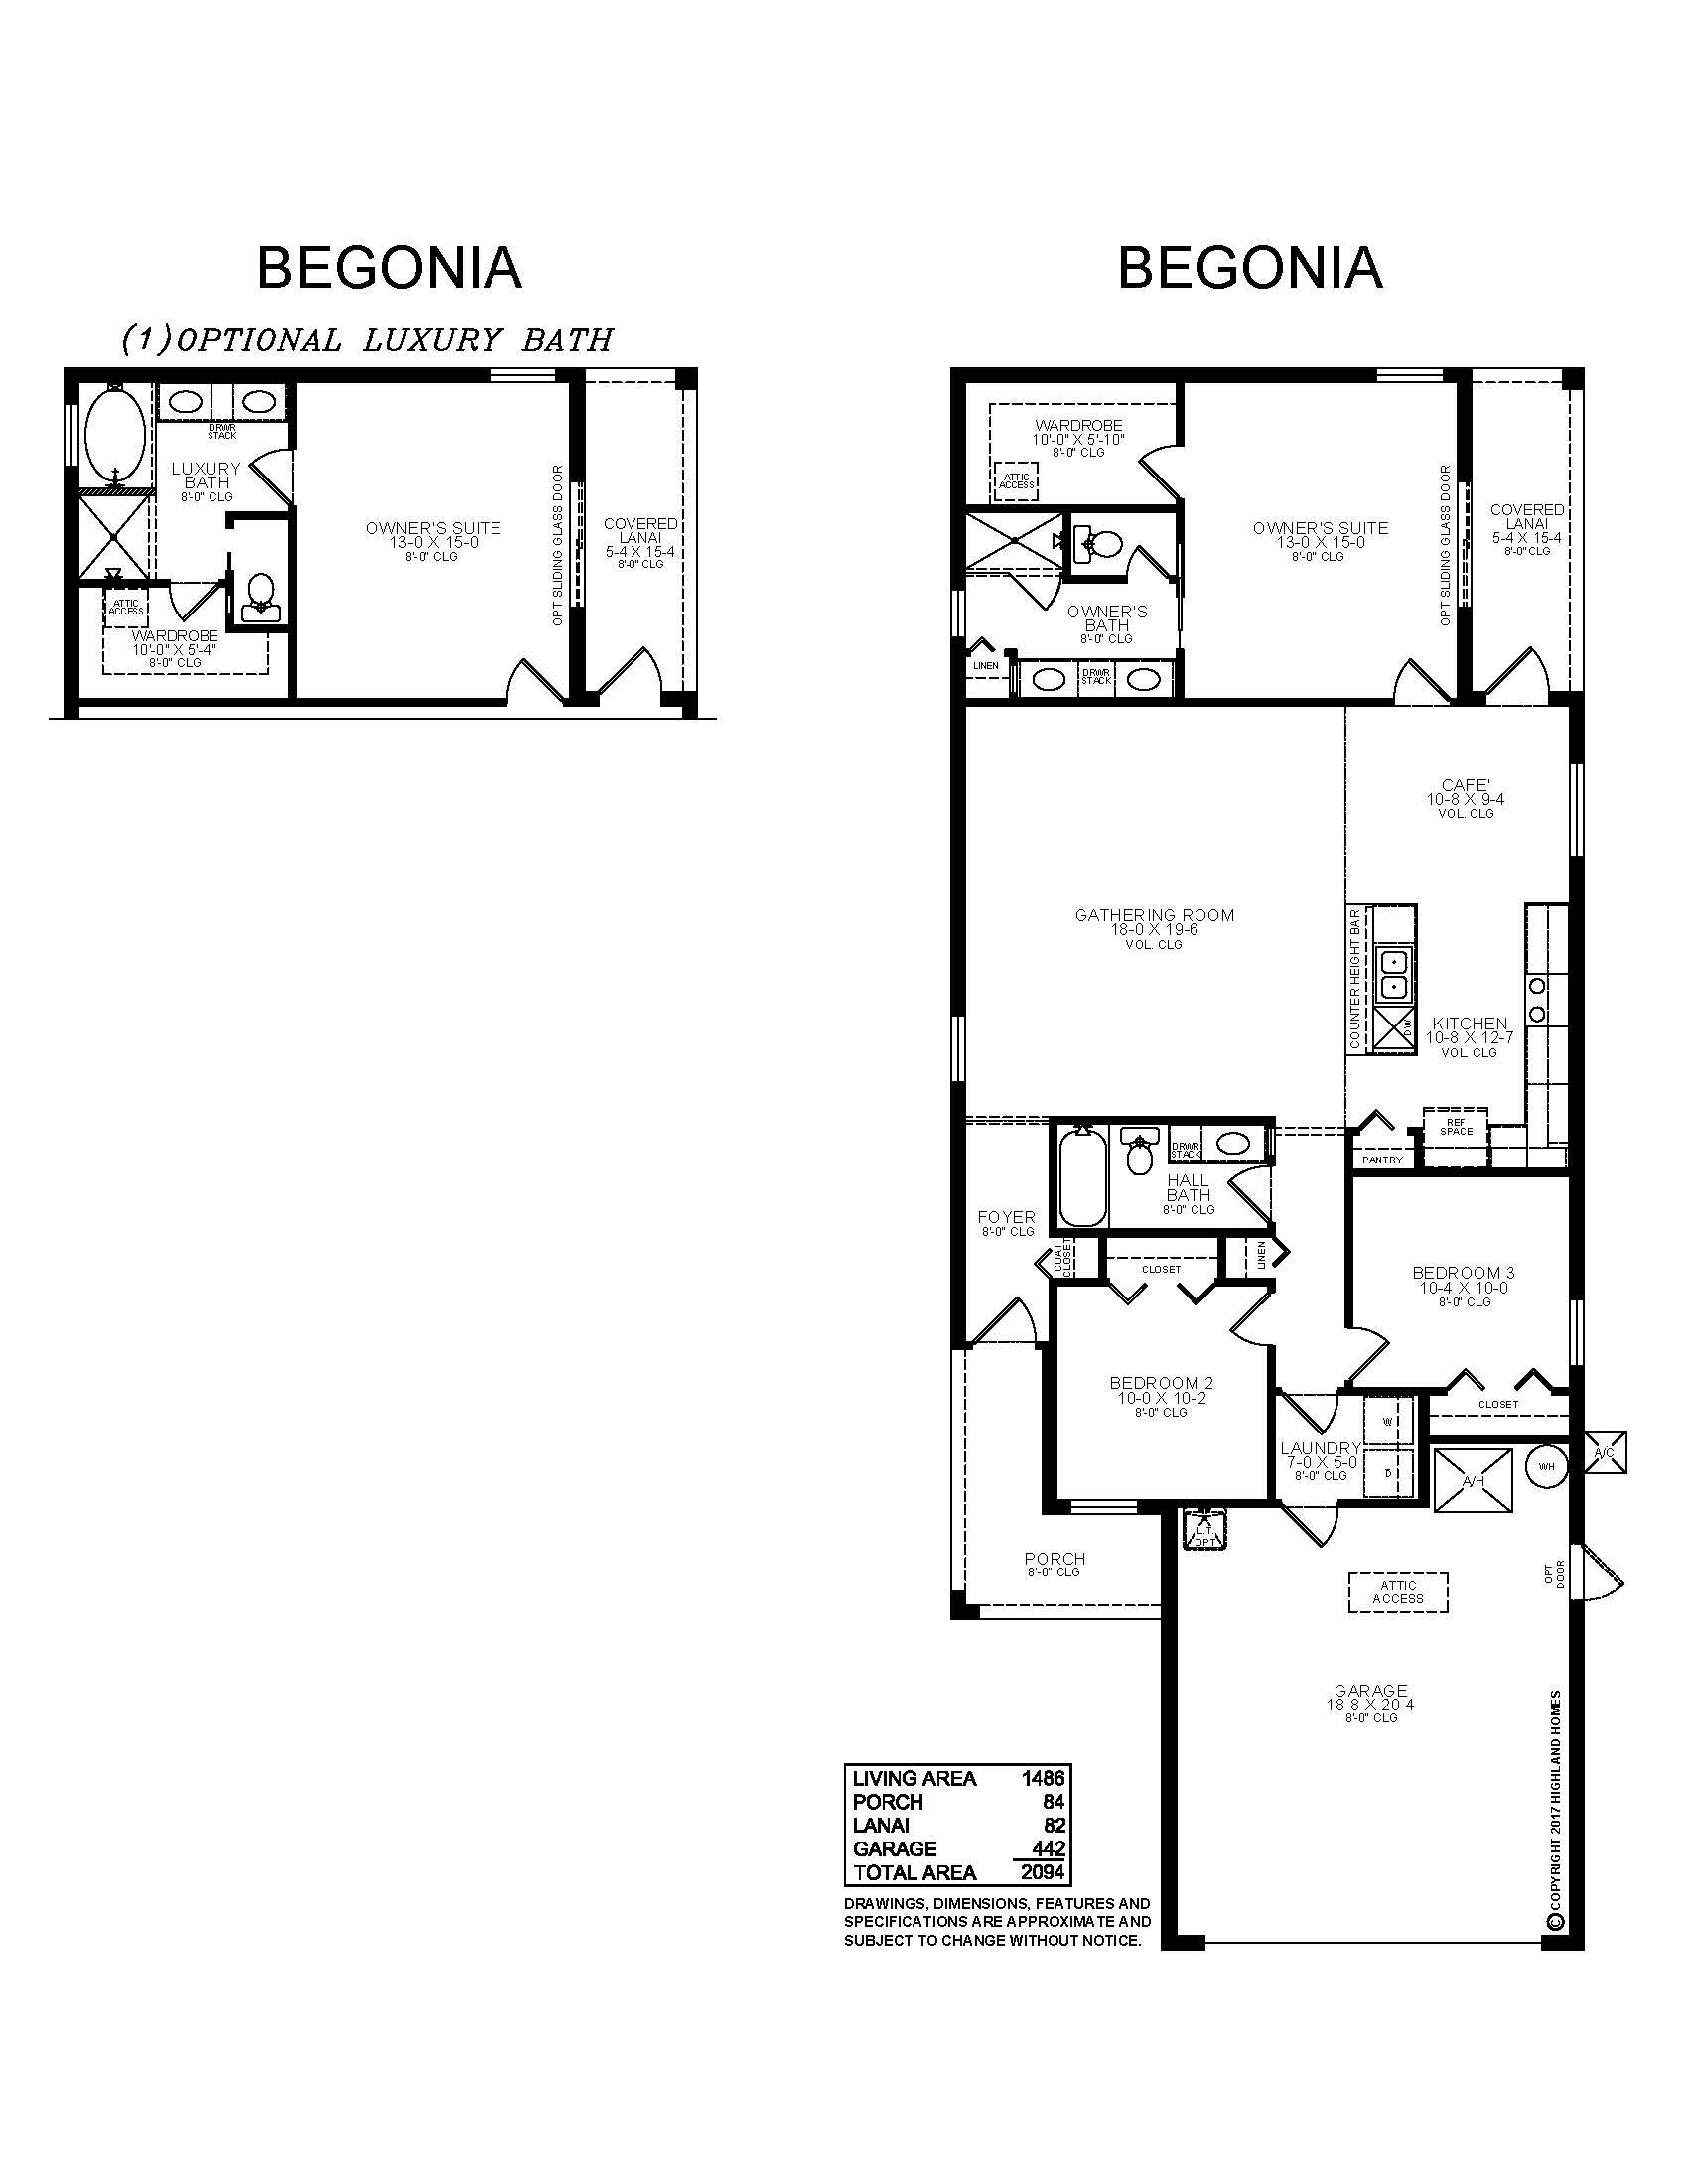 Introducing The Begonia A New Florida Home Plan By Highland Homes This Home Features 1 486 Sq Ft 3 Beds 2 Bath Highland Homes Florida Home Layout Meaning